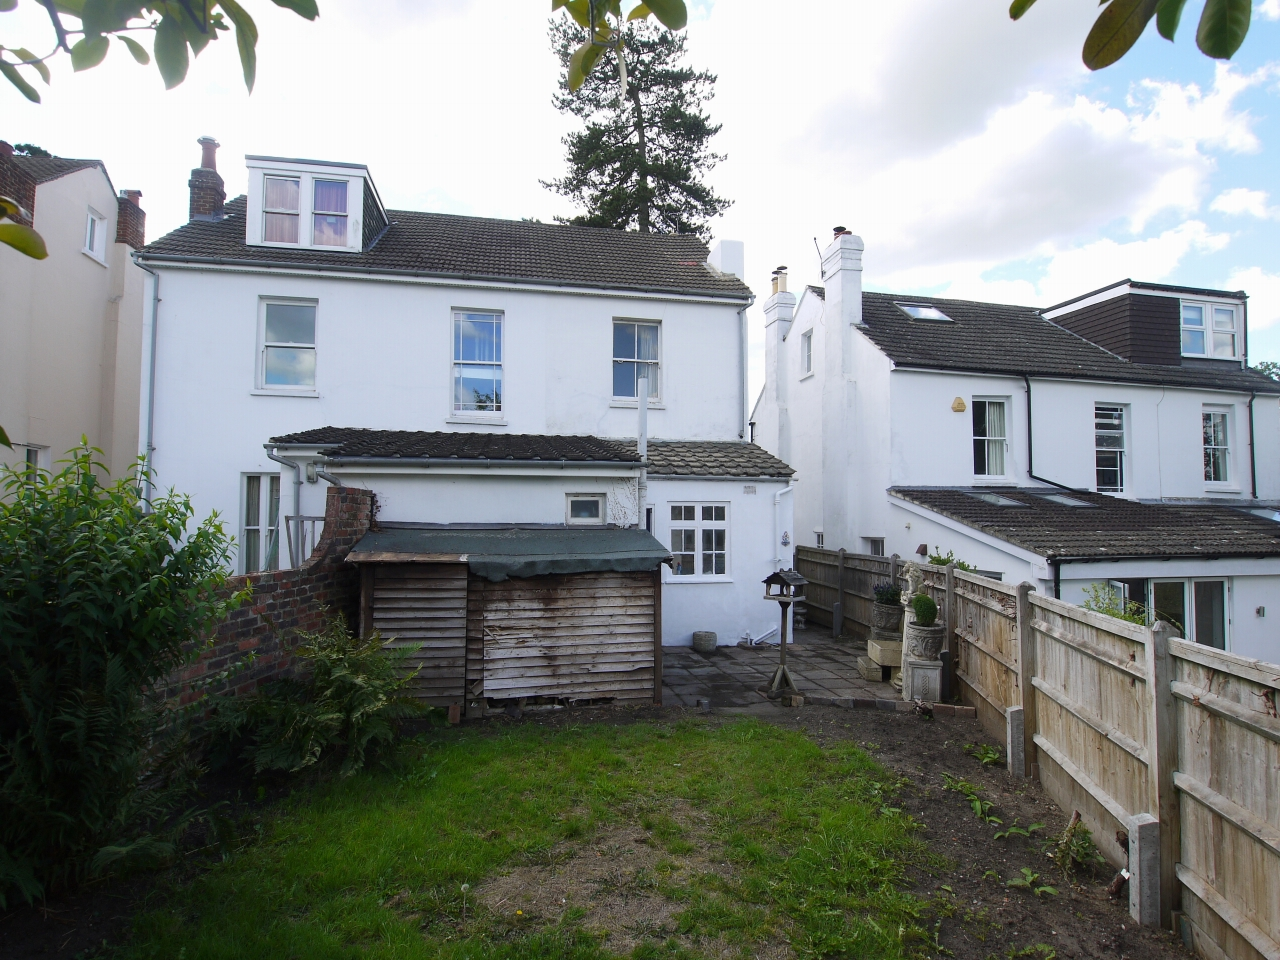 2 bedroom semi-detached house Sold in Sevenoaks - Photograph 9